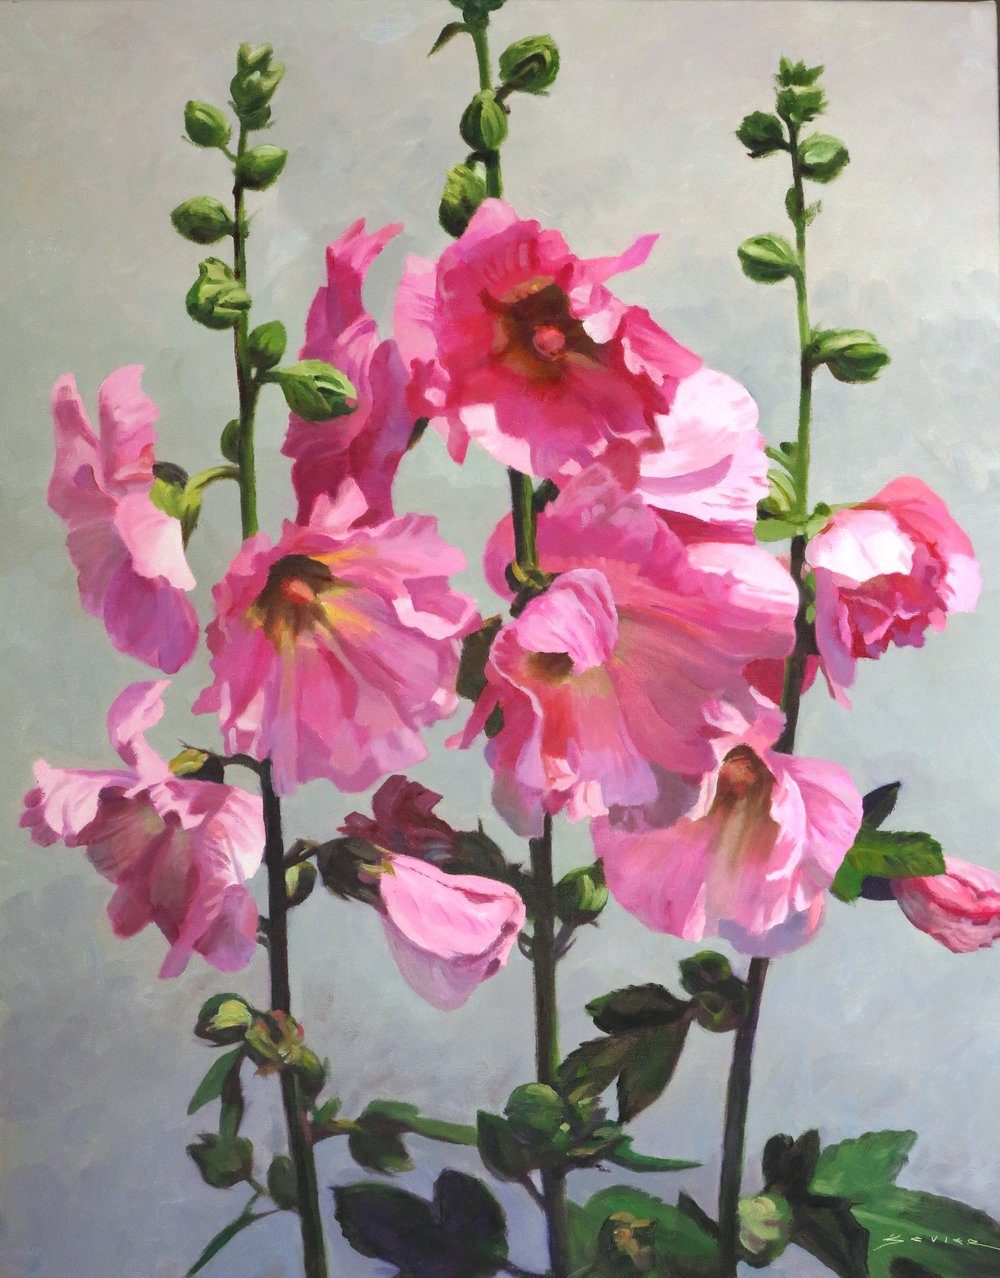 Pink Hollyhocks on a Light Background,  28 x 22, oil